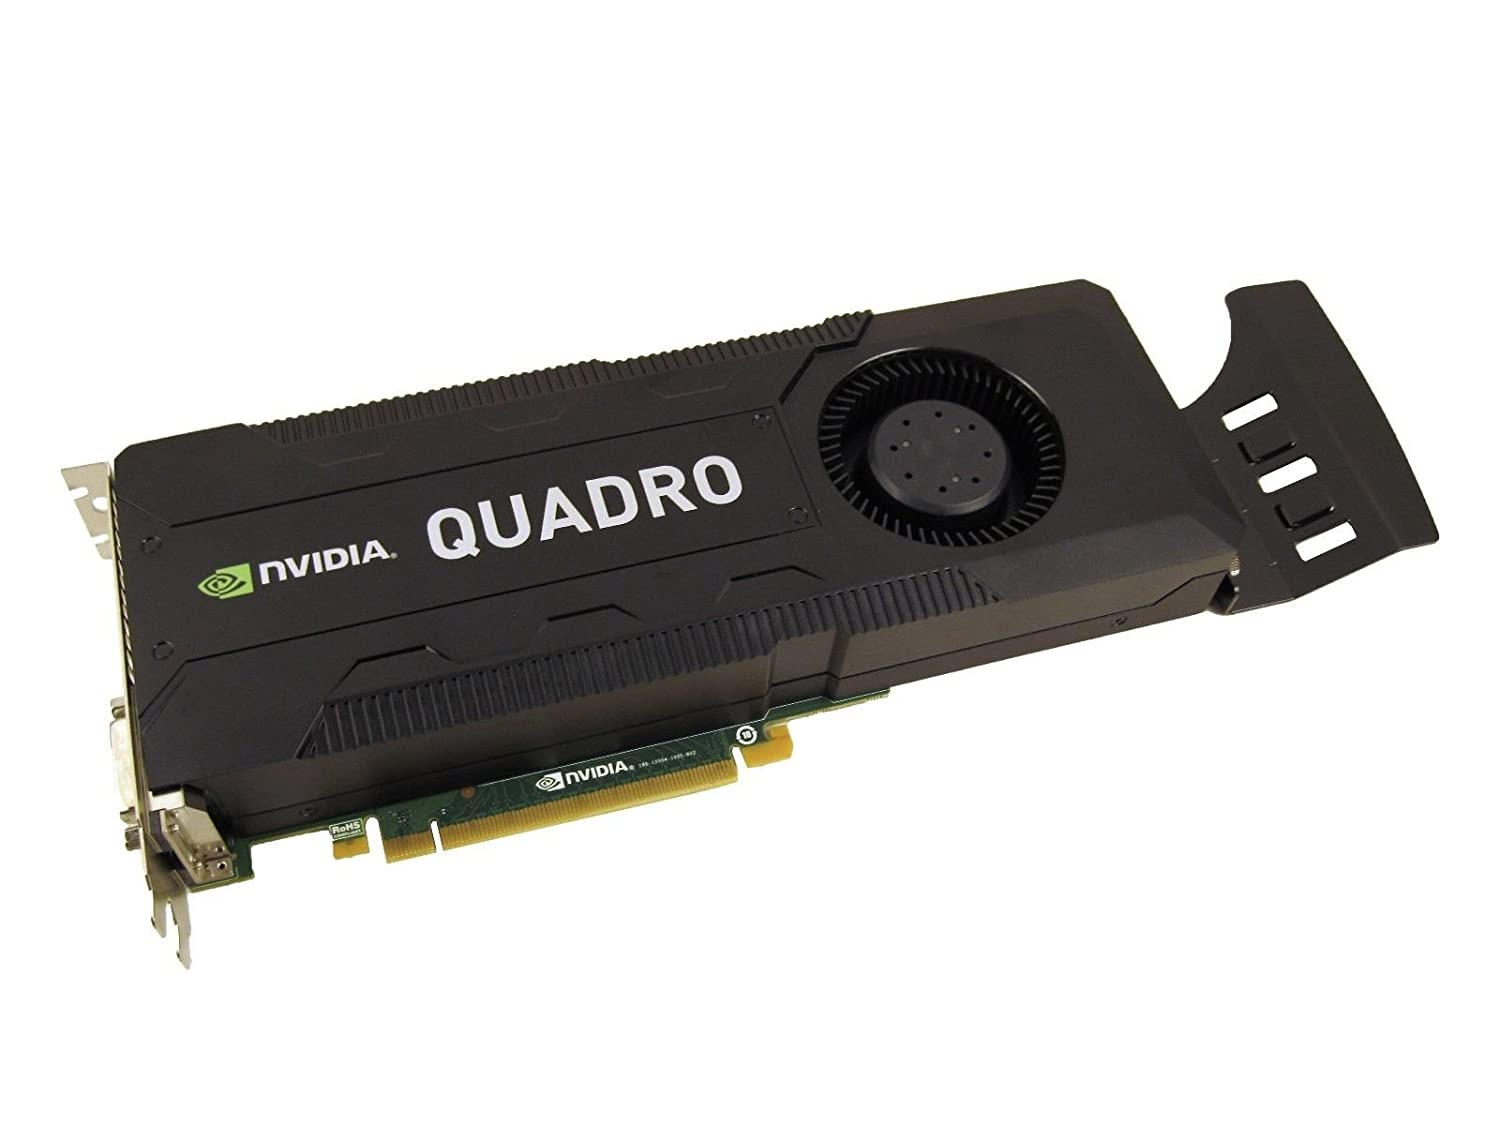 NVIDIA Quadro K5000 4GB GDDR5 PCI-E 2 0 x16 Video Card With Dispalyport and  DVI Outputs